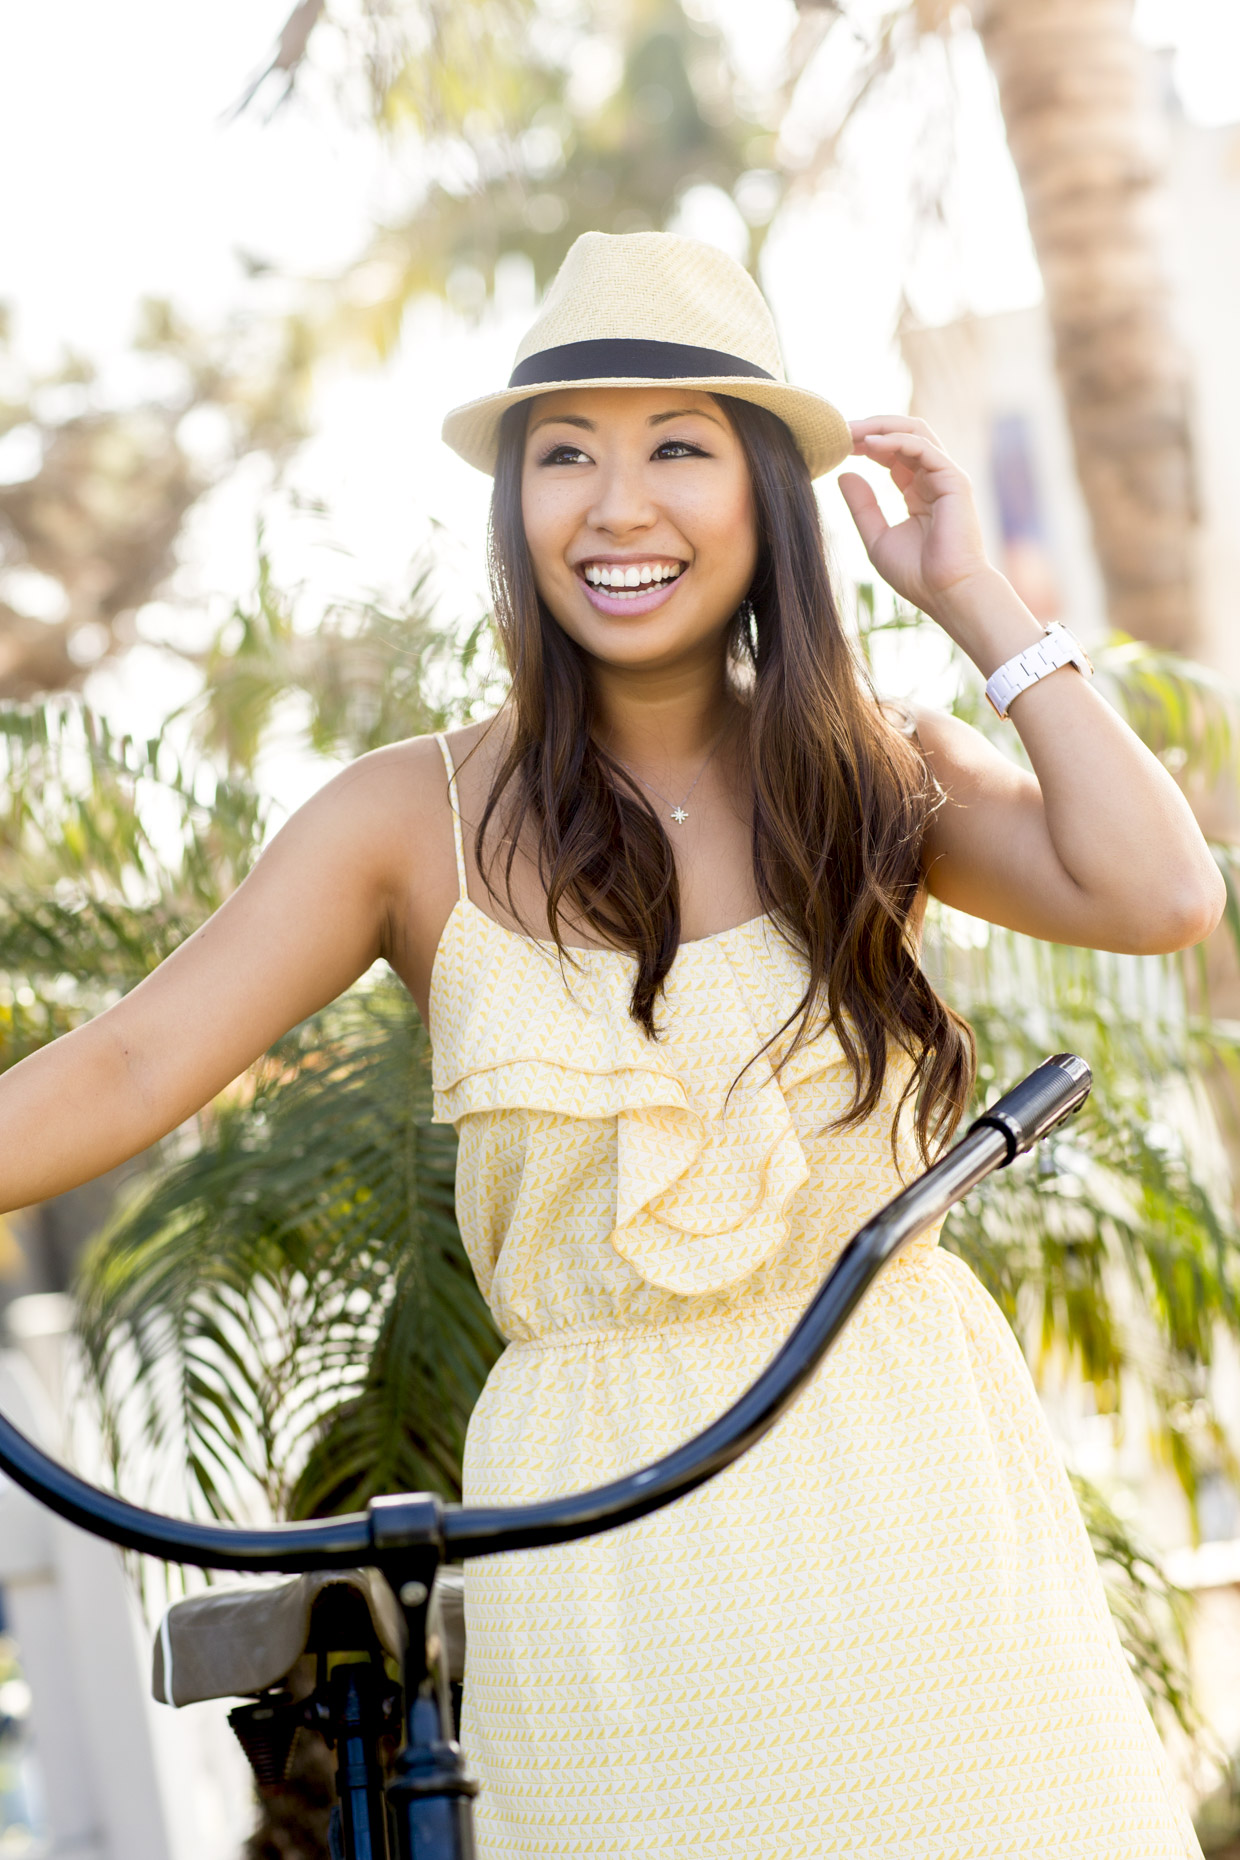 Happy woman in yellow dress and hat with bicycle